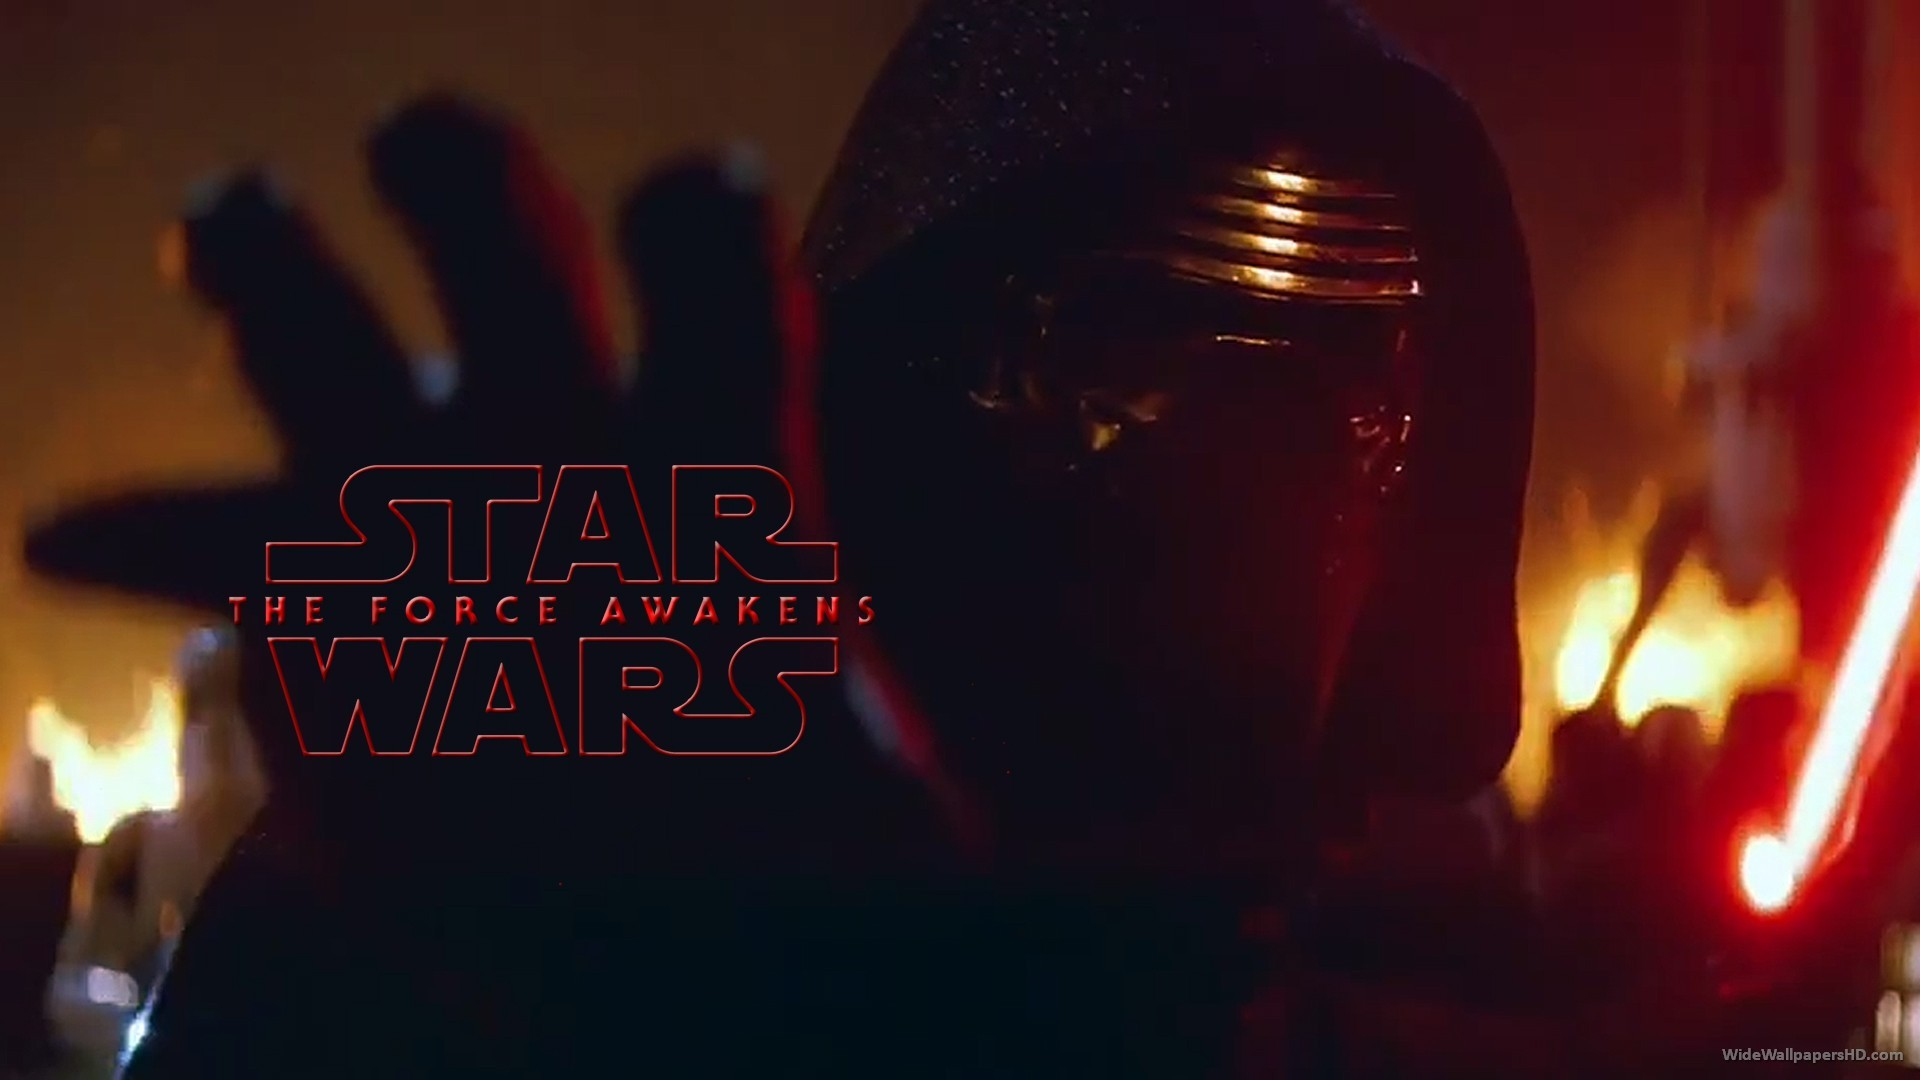 The force awakens wallpaper 1920x1080 download free - Star wars the force awakens desktop wallpaper ...